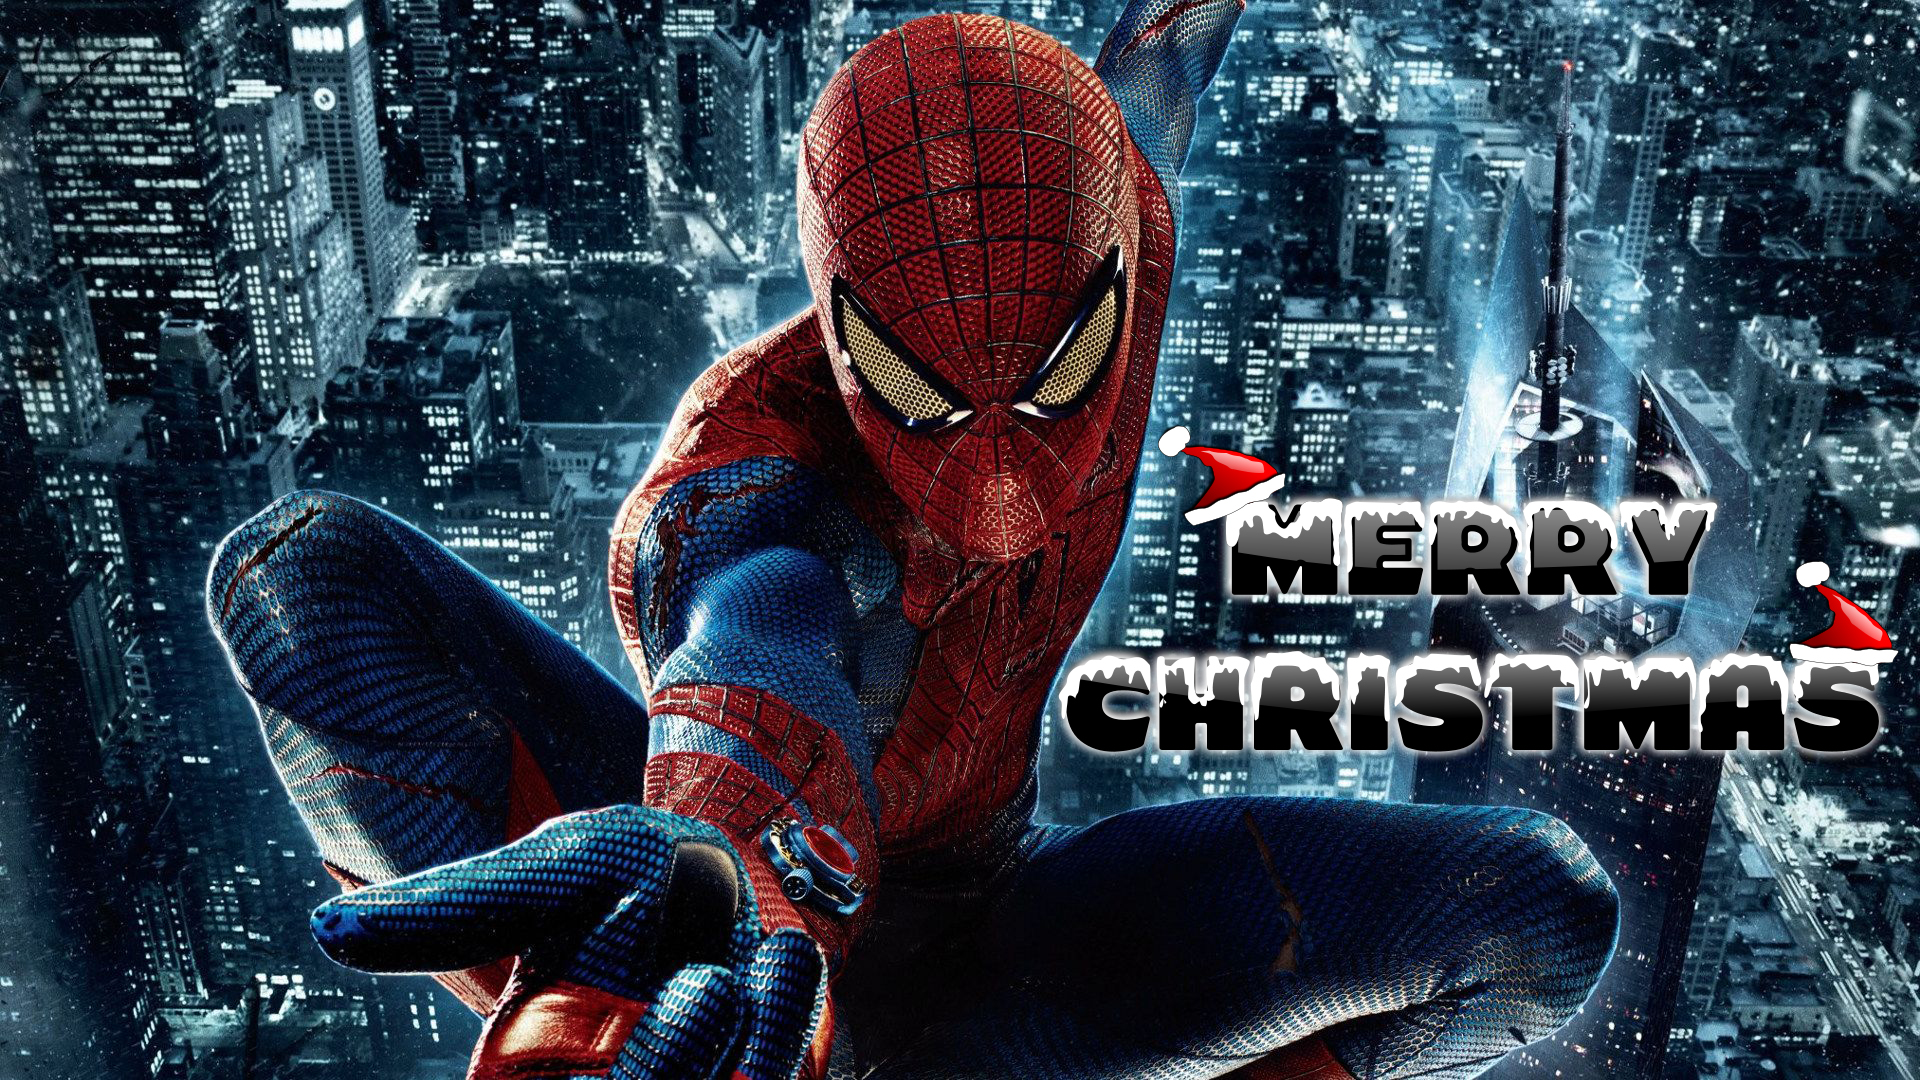 happy merry christmas wishes super hero spiderman kids hd wallpaper